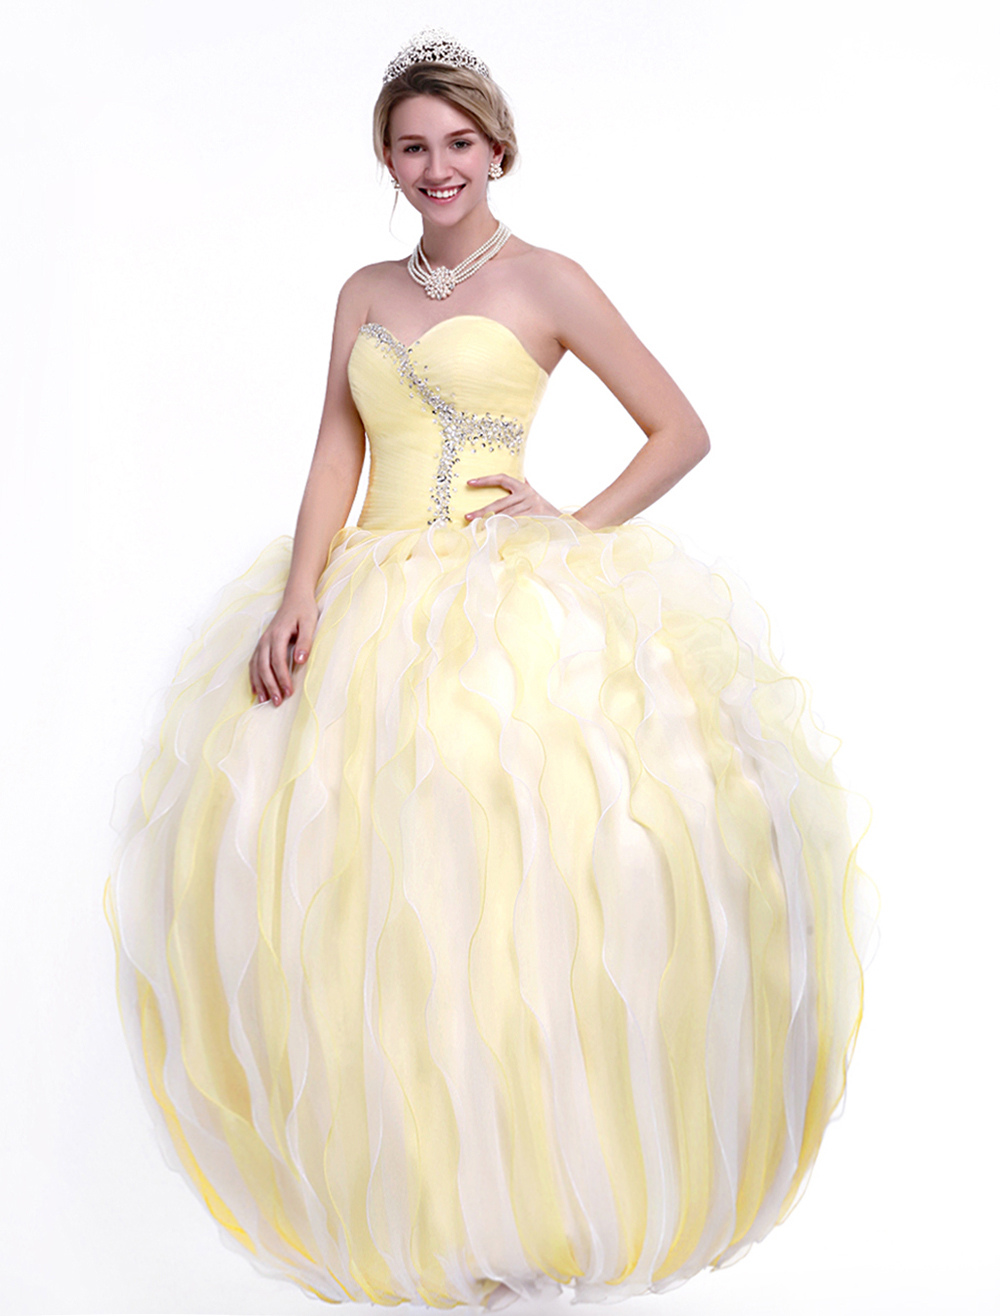 Cream Quinceanera Dress in Ball Gown Silhouette with Sweetheart Neck ...